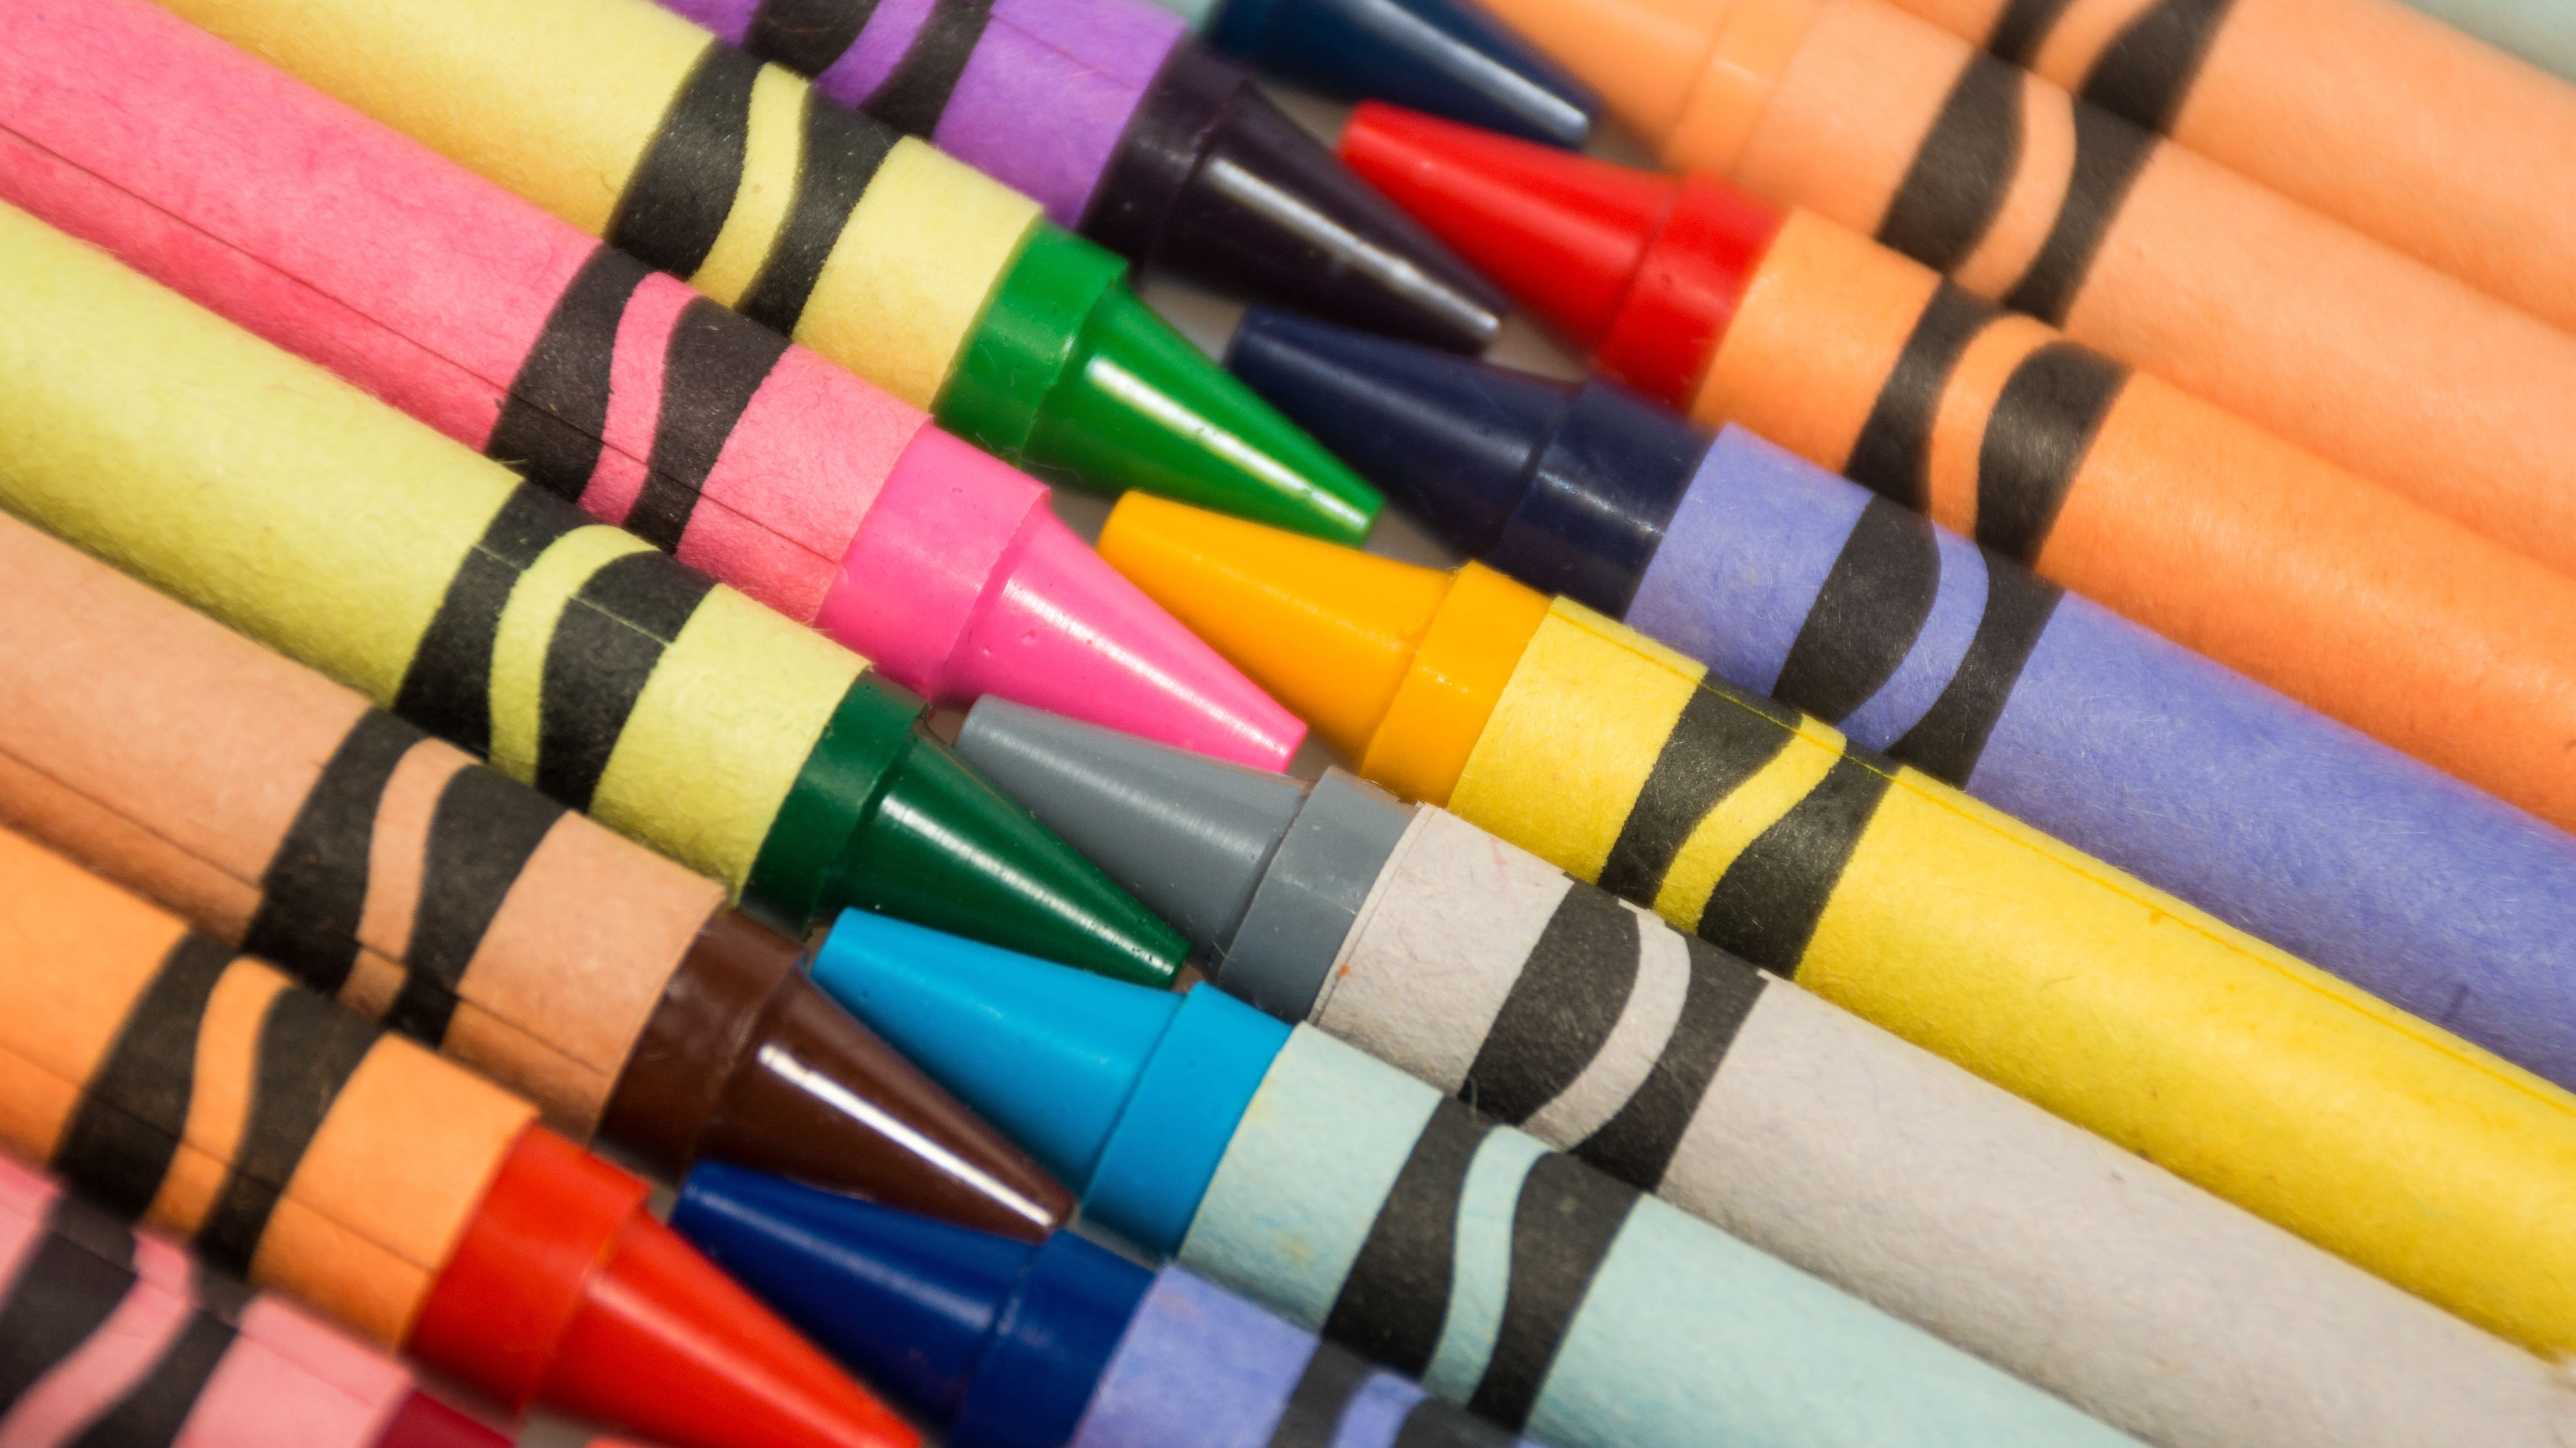 Restaurants Waste 150 Million Crayons Each Year. This Charity Is Donating Them to Classrooms